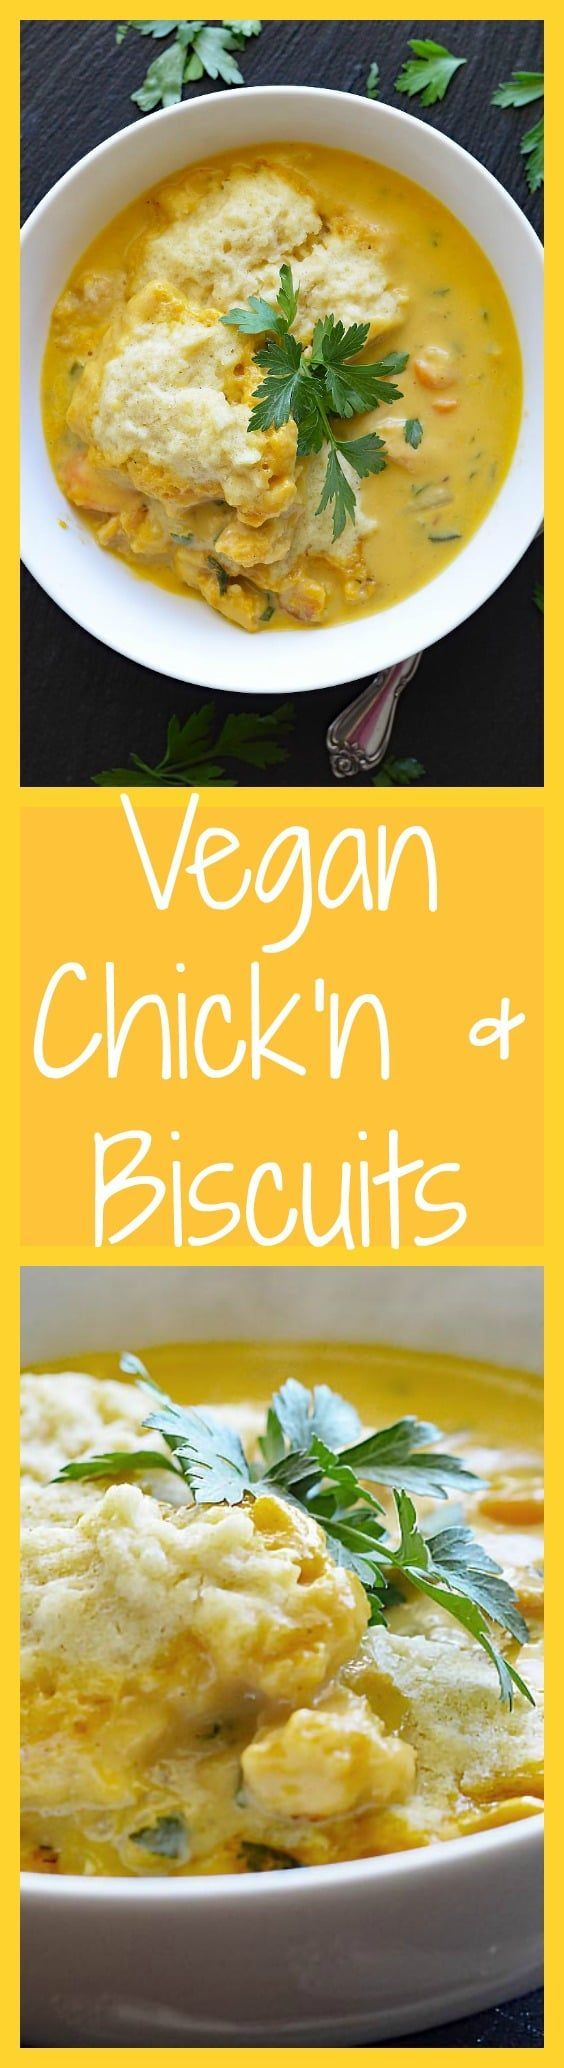 My grandma didn't cook often, but she had a few recipes in her arsenal that us grandkids just loved and in my pre-veggie days, this was one of them. Finally, I can enjoy Vegan Chicken and Biscuits (and you can too!).  This dish was so flavorful, I really hope you give it a try :) Get the recipe here, only at THE VEG LIFE! ---> http://theveglife.com/vegan-chicken-biscuits/